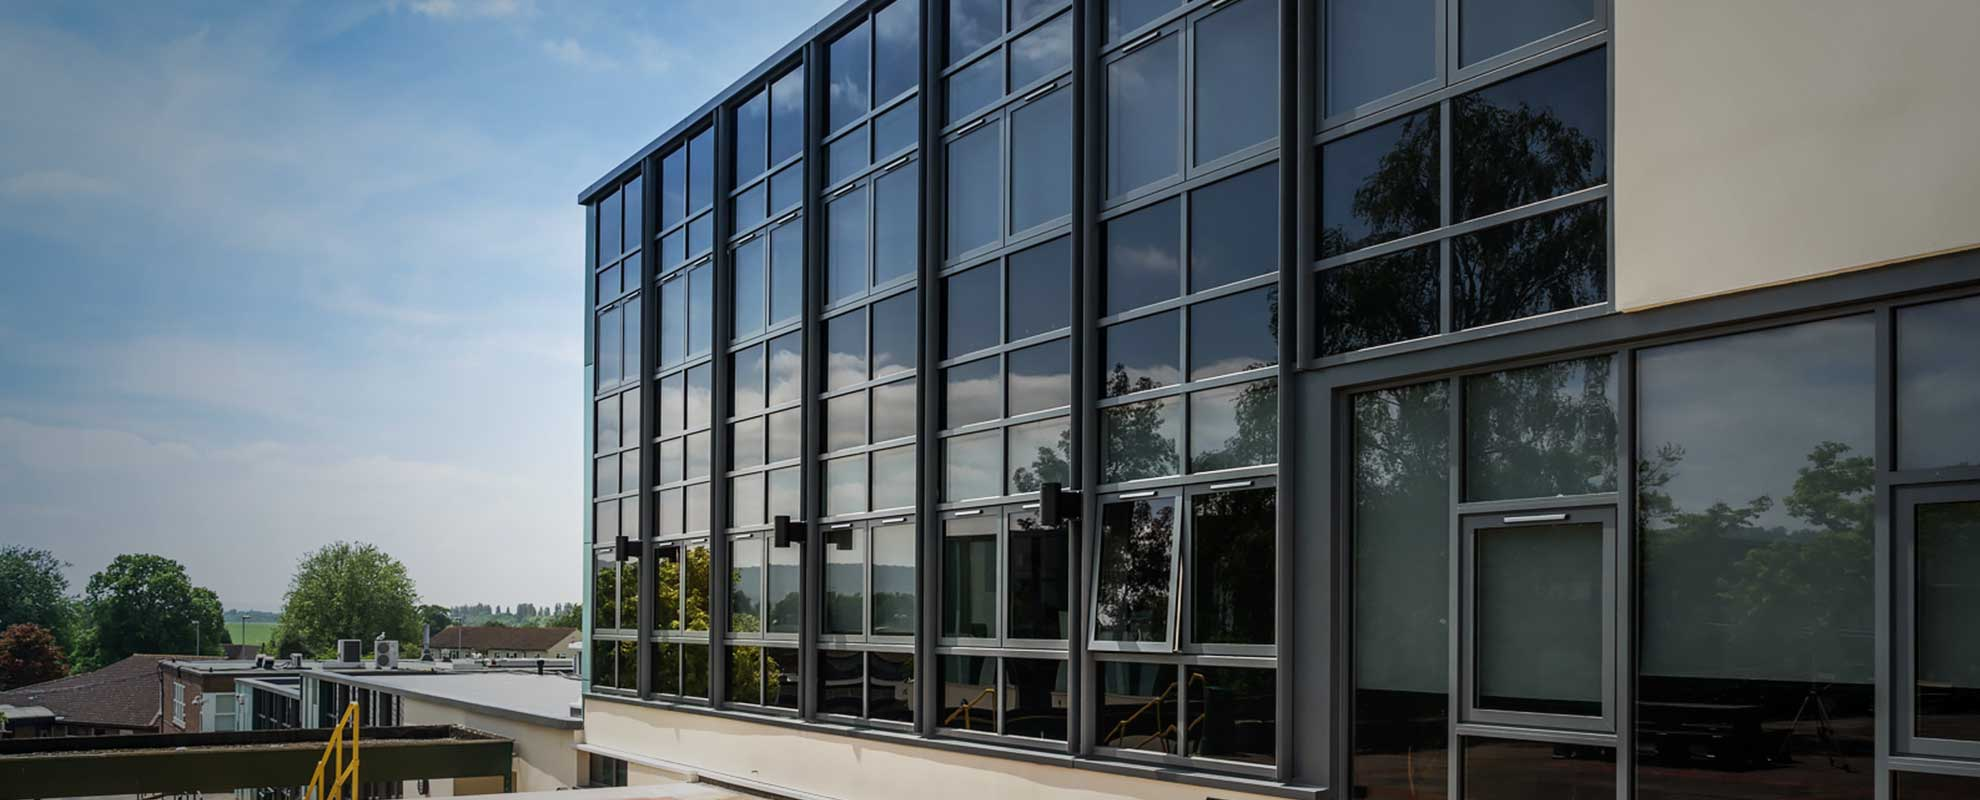 Black aluminium curtain wall with tinted glass